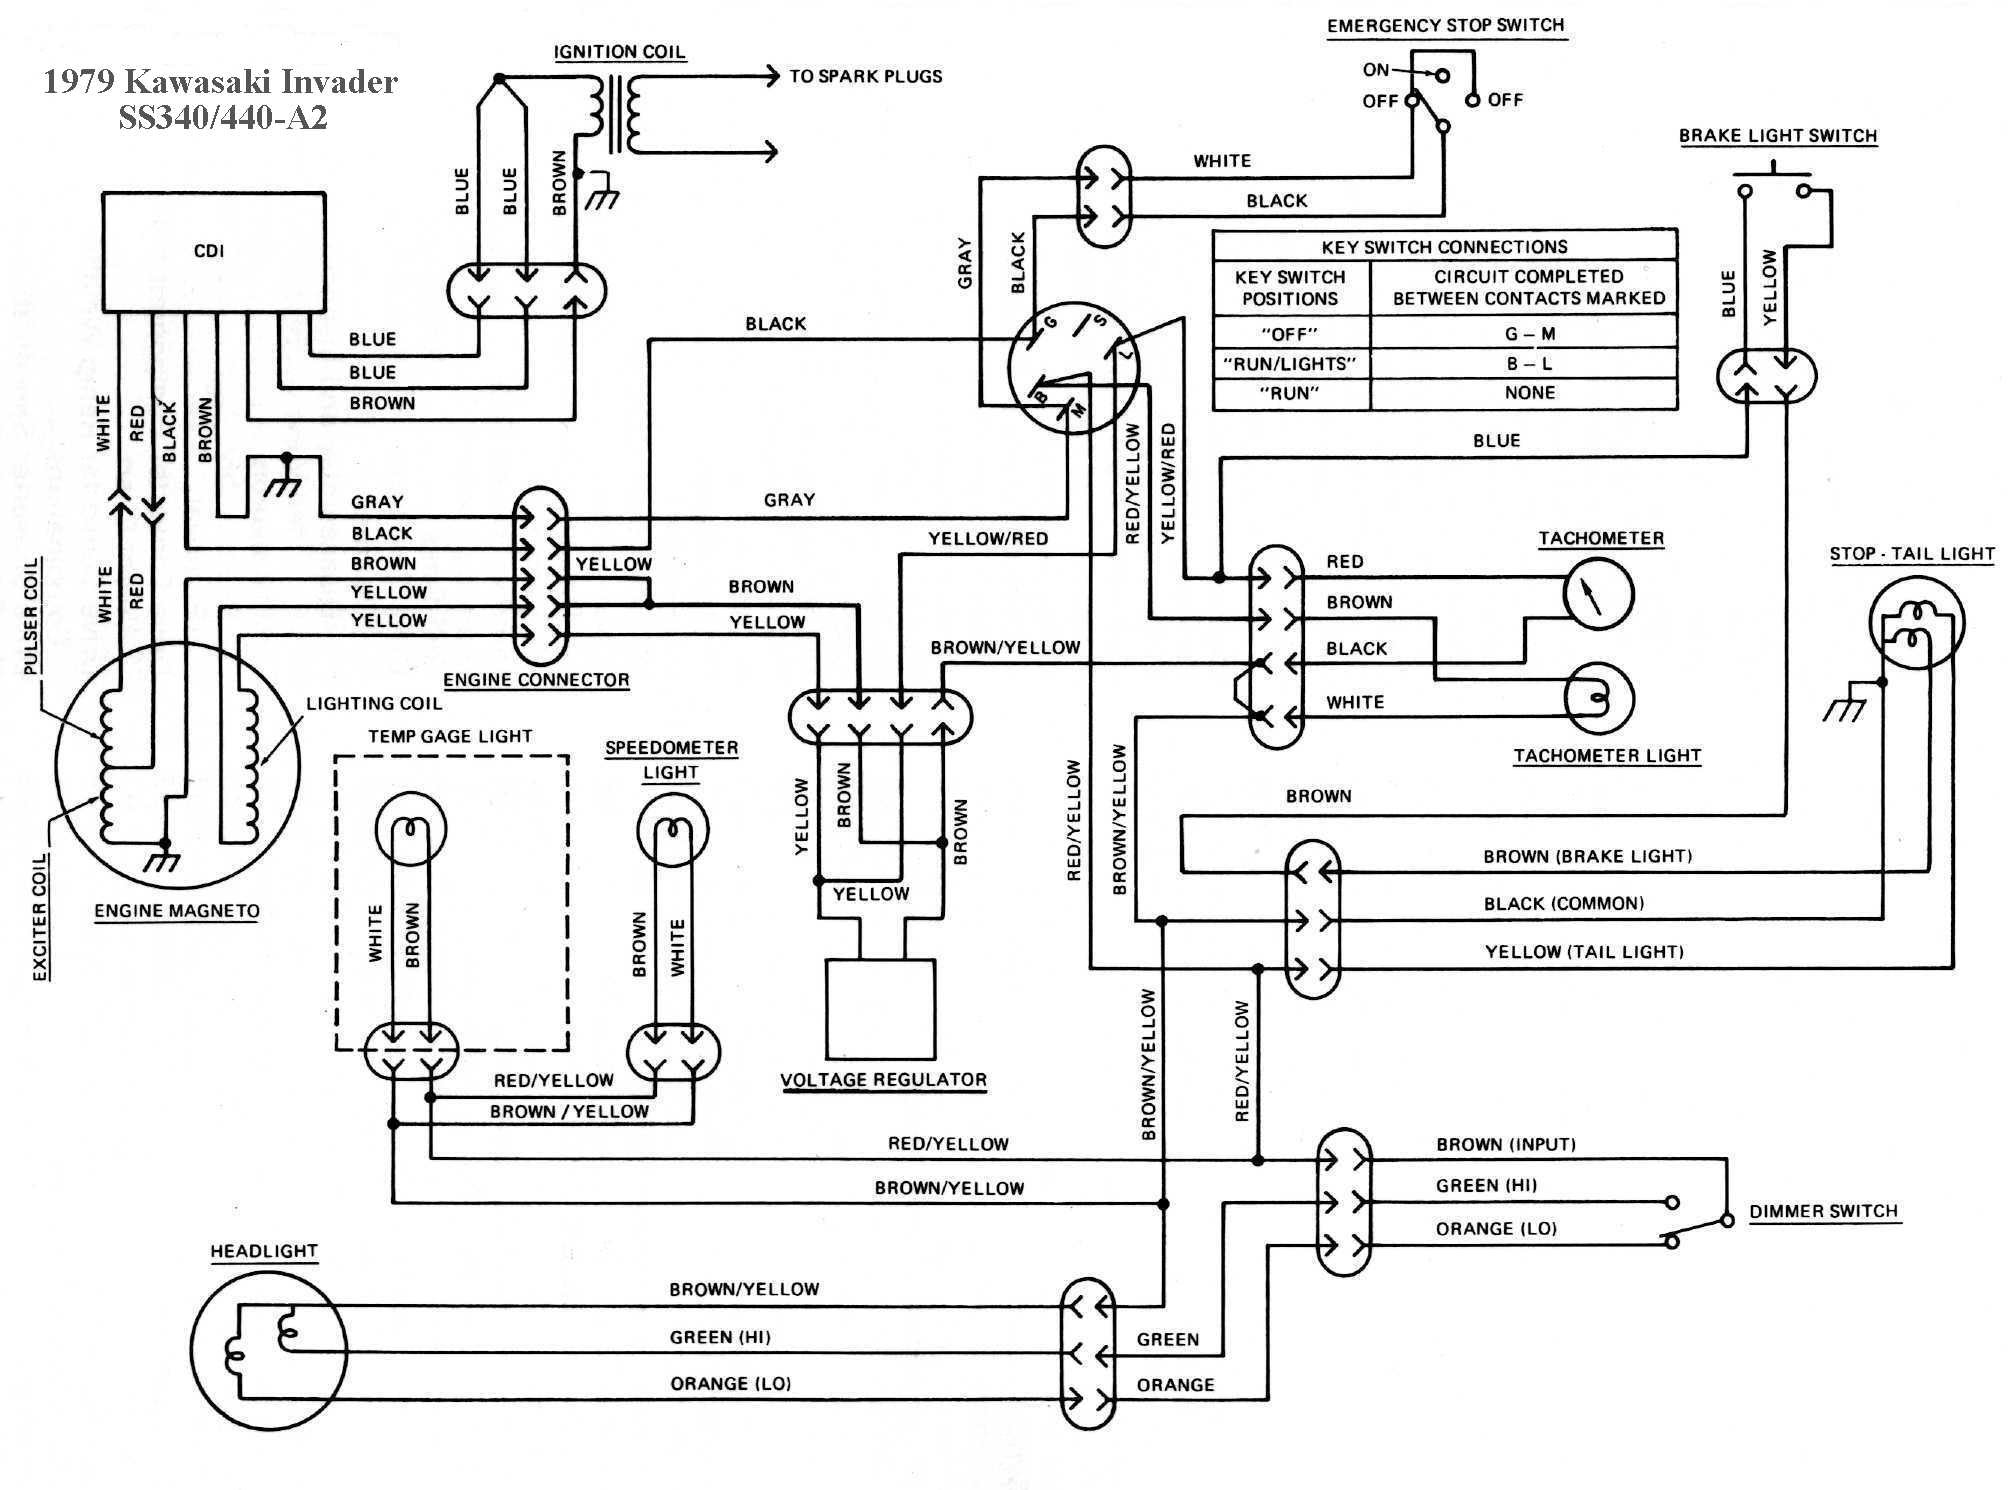 1991 Kawasaki Bayou 220 Wiring Diagram - Wiring Diagram Replace end-symbol  - end-symbol.miramontiseo.it | Bayou 220 Wiring Schematic |  | end-symbol.miramontiseo.it